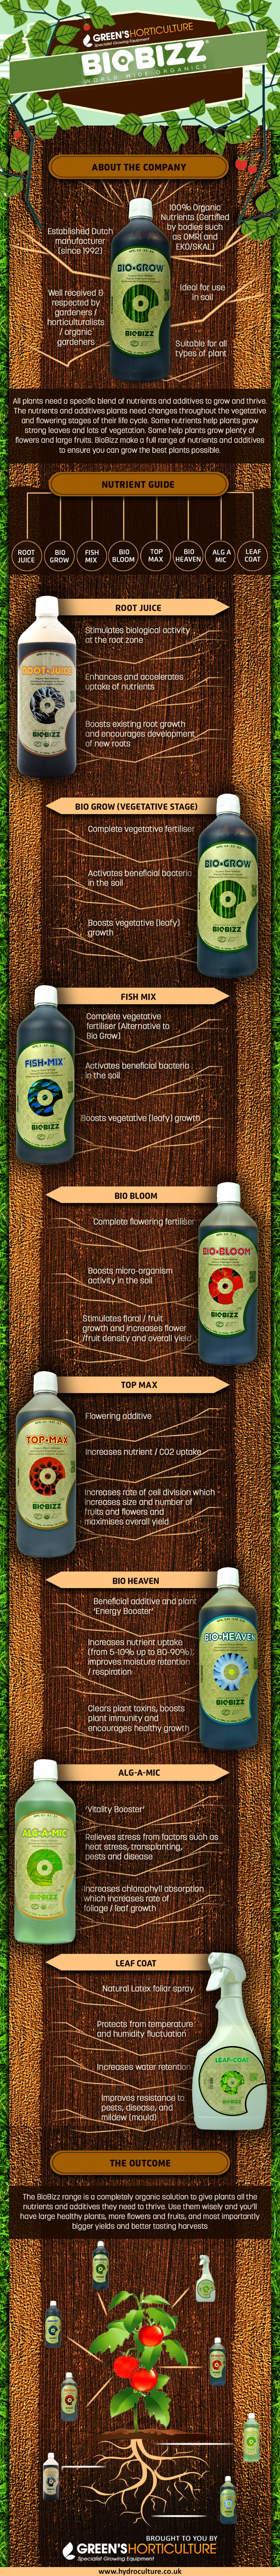 The Guide to BioBizz Organic Plant Nutrients Infographic